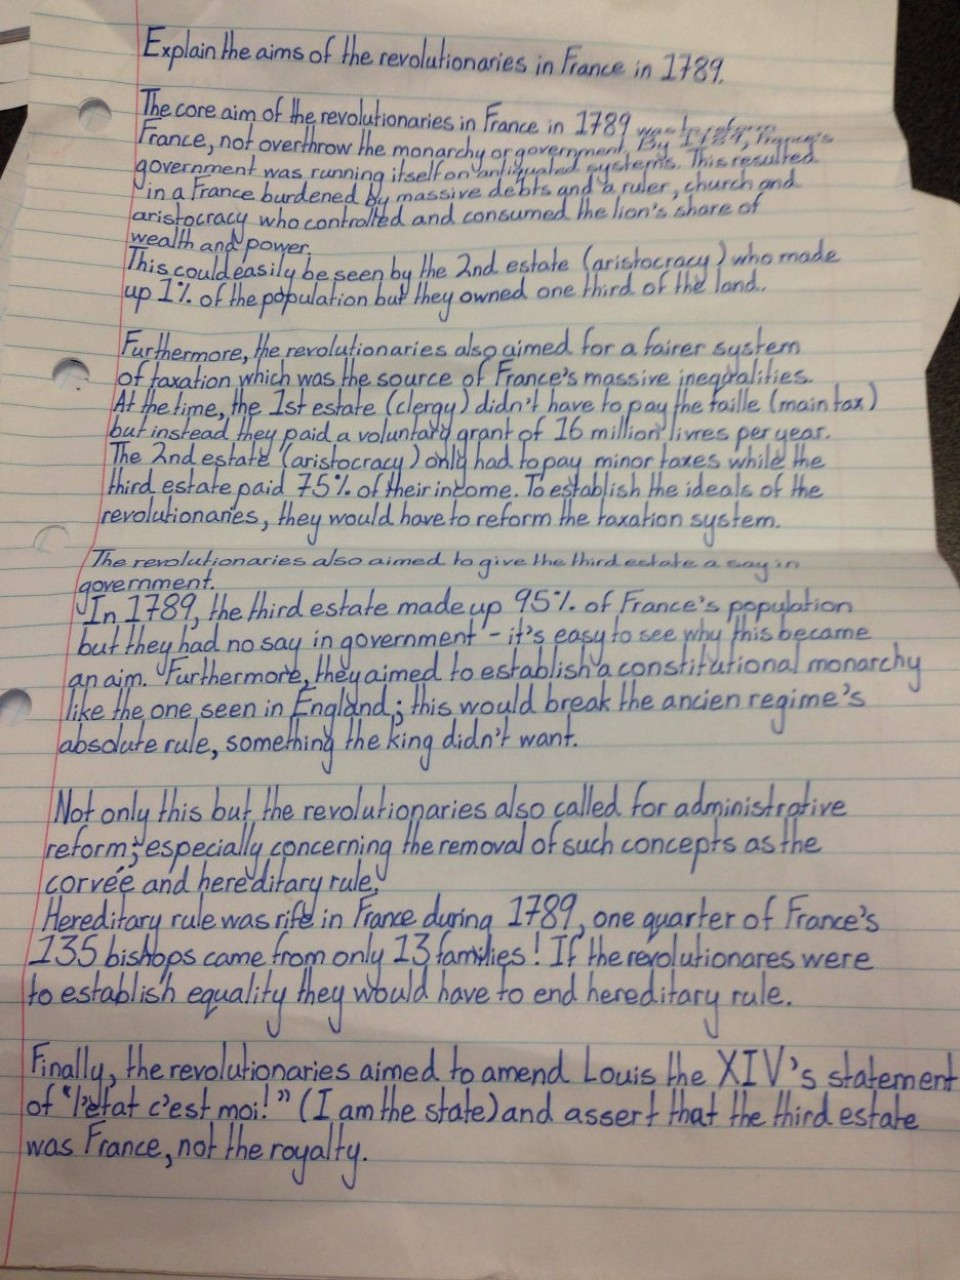 016 Essaysrench Revolution Uqdxjil Example On Questions The Essay Laidoundation Of Democracy Causes And Effects Regents Paris Provinces Conclusion Enlightenment Napoleon 936x1248 Phenomenal French Outline Titles 960